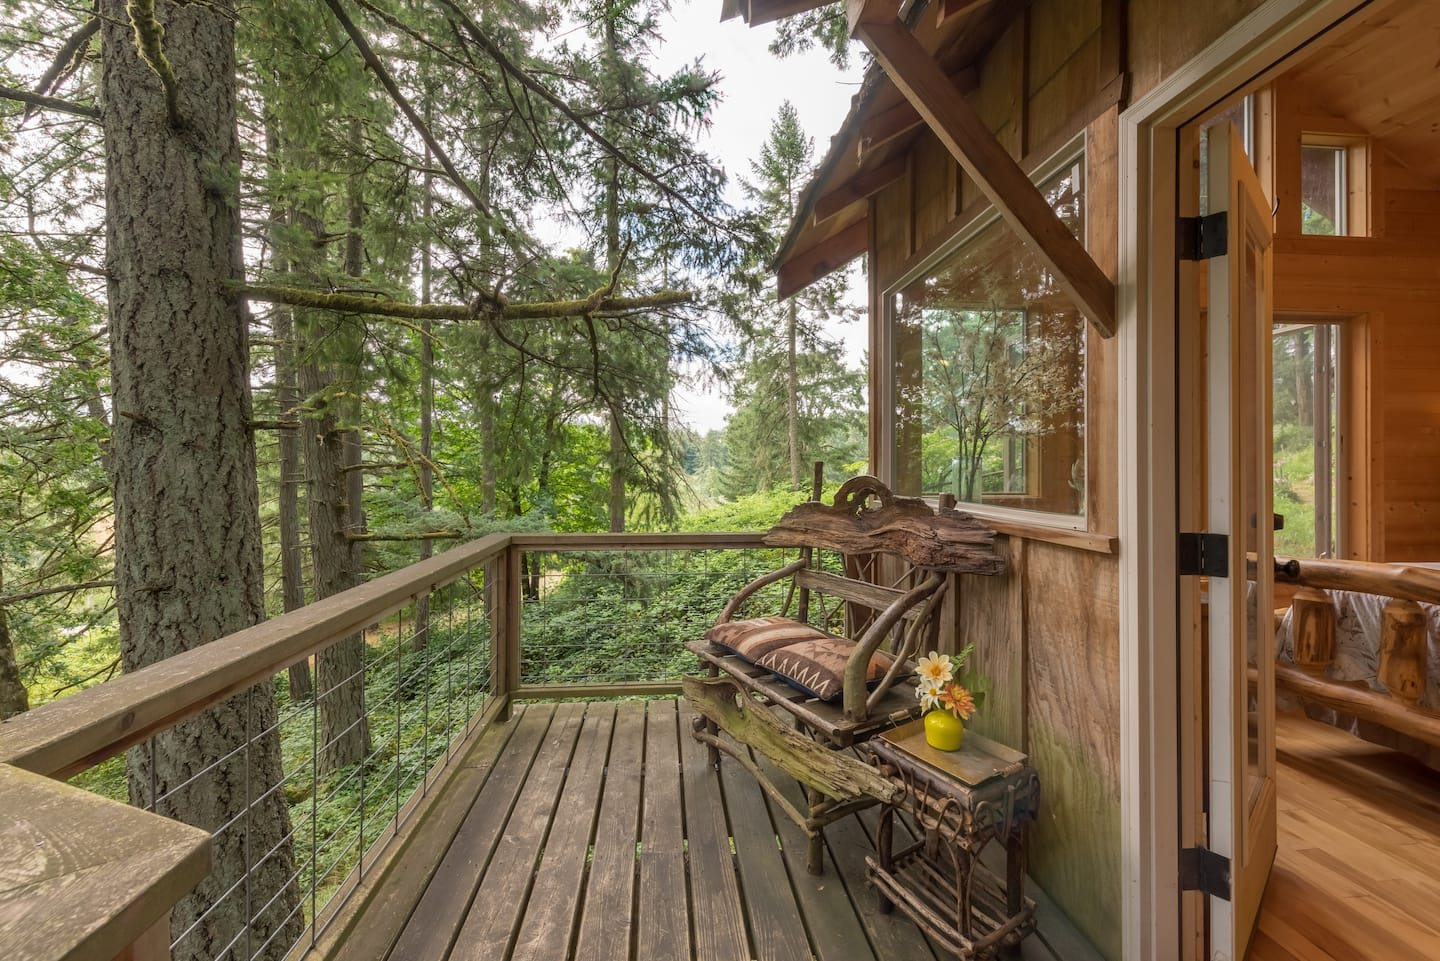 Wine Country Oregon TreeHouse Airbnb